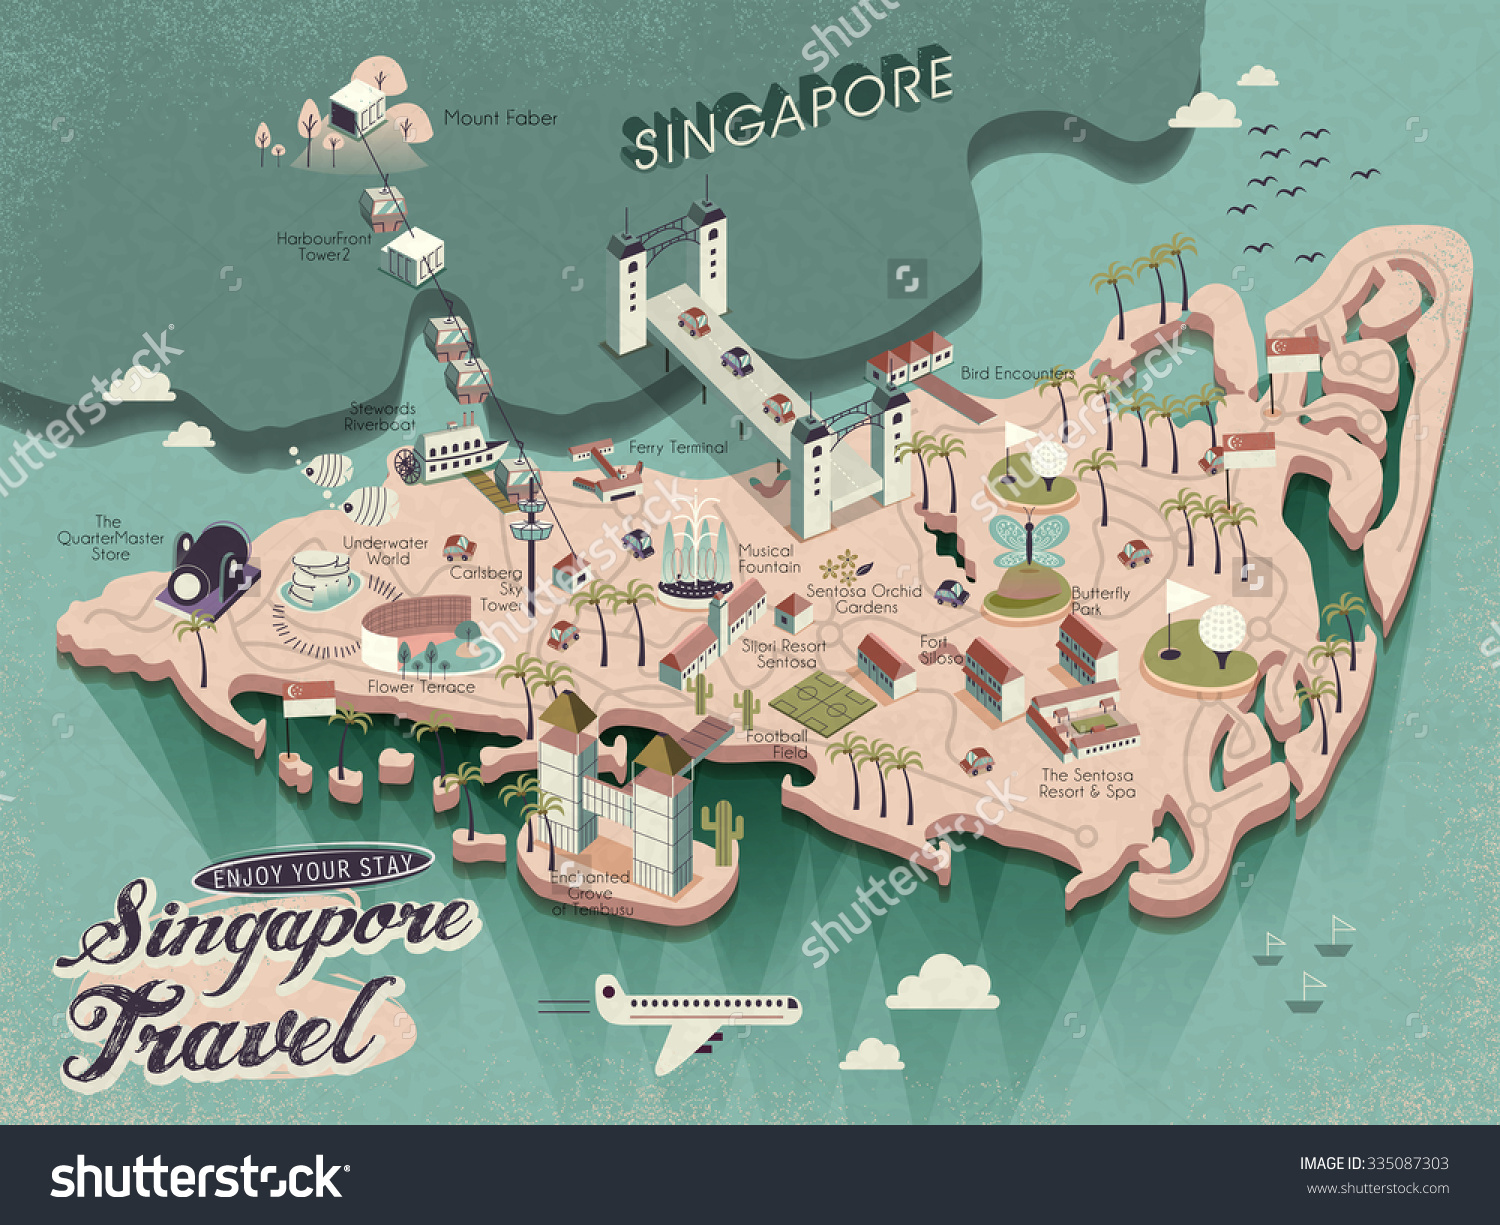 Lovely Singapore Must See Attractions Travel Vector – Singapore Tourist Attractions Map